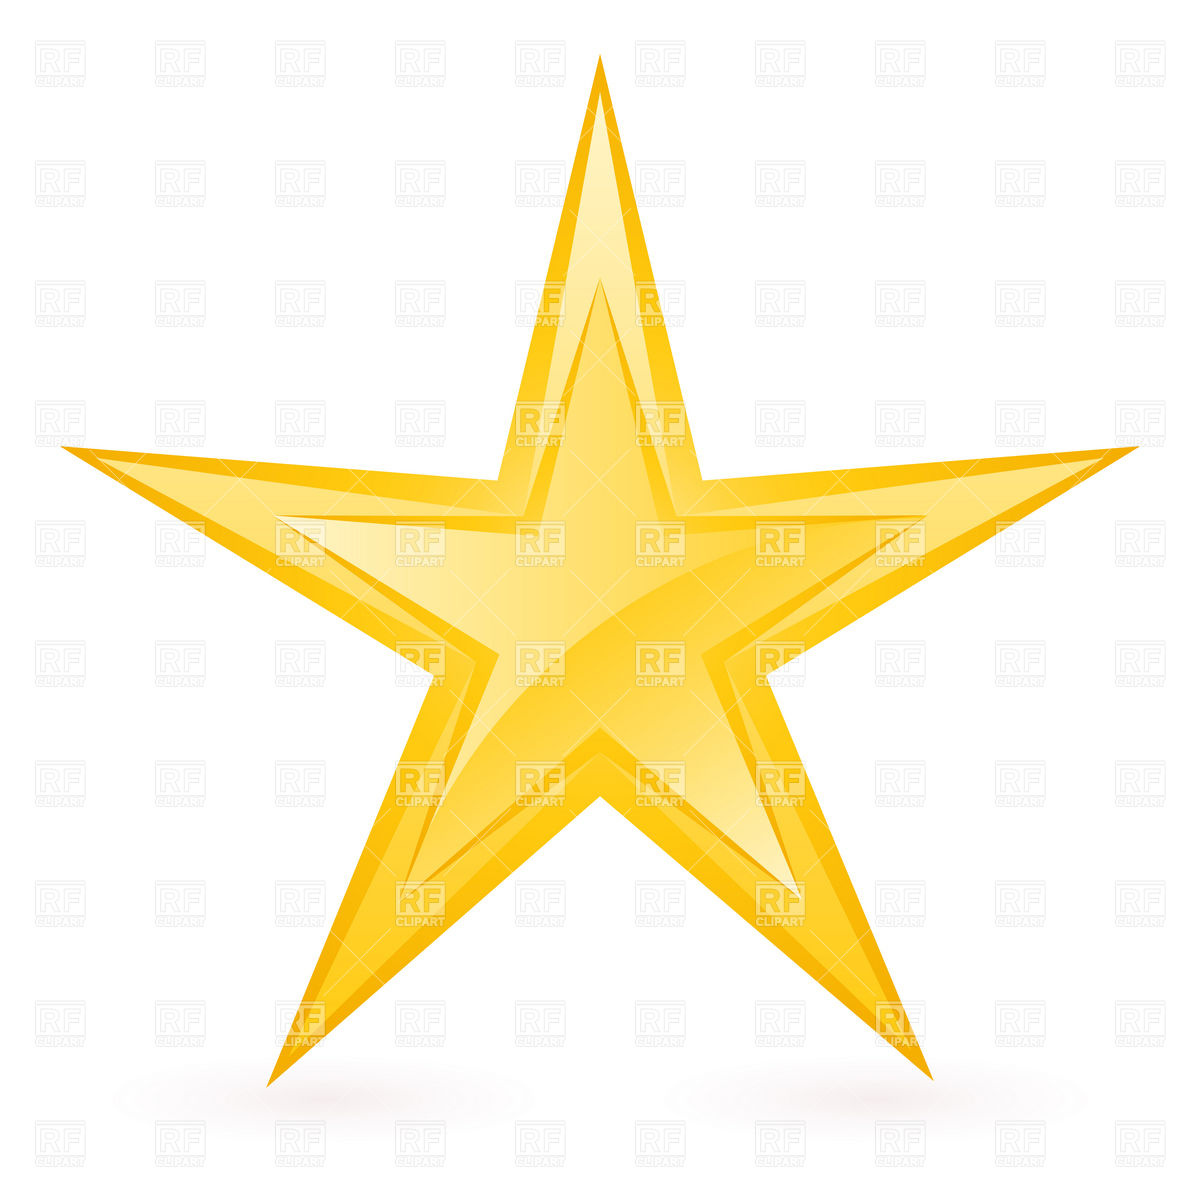 Thin star clipart clipart freeuse stock Shiny thin golden star Vector Image #8280 – RFclipart clipart freeuse stock